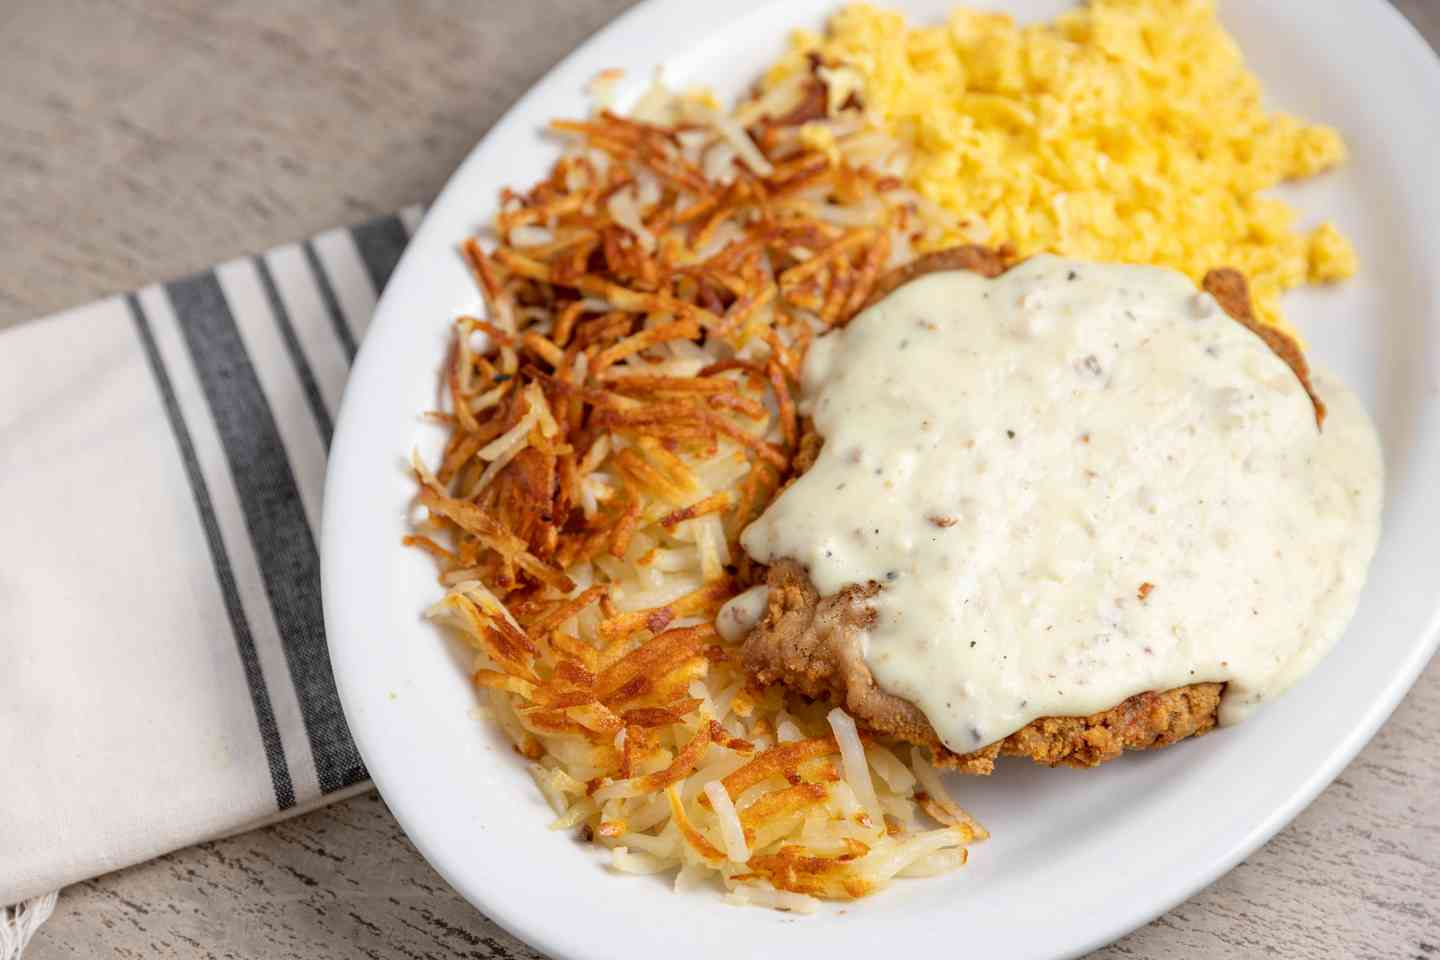 Keno's Chicken Fried Steak & Eggs